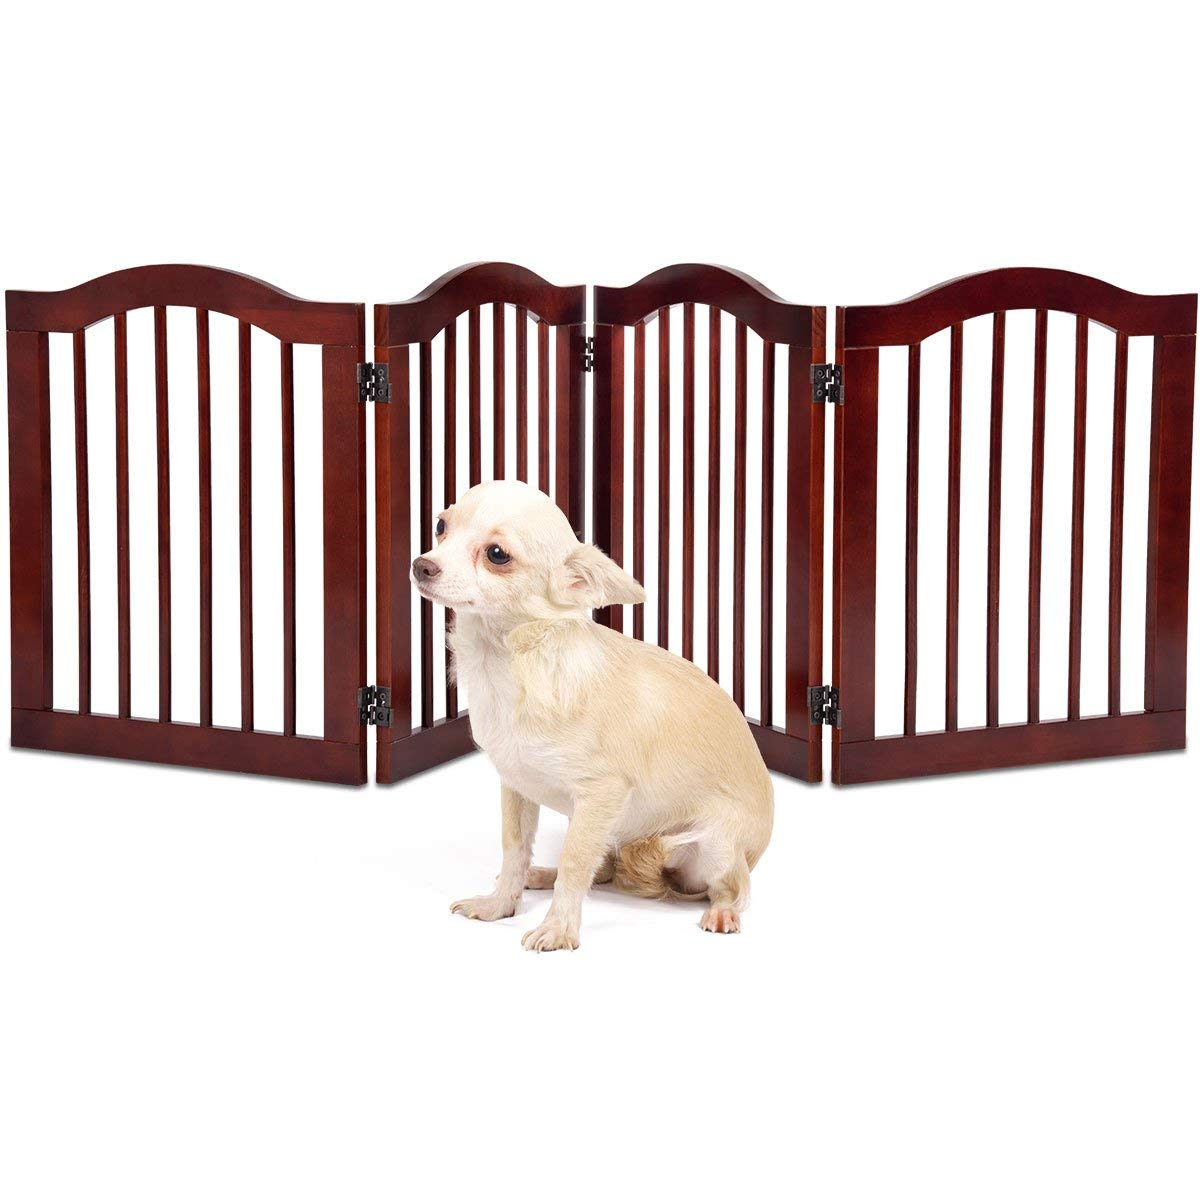 Giantex 4 Panel Wood Dog Gate Pet Fence Barrier Folding Freestanding Doorway Fence Doggie Puppy Fencing Enclosure System Indoor Safety Gate for Dogs 24